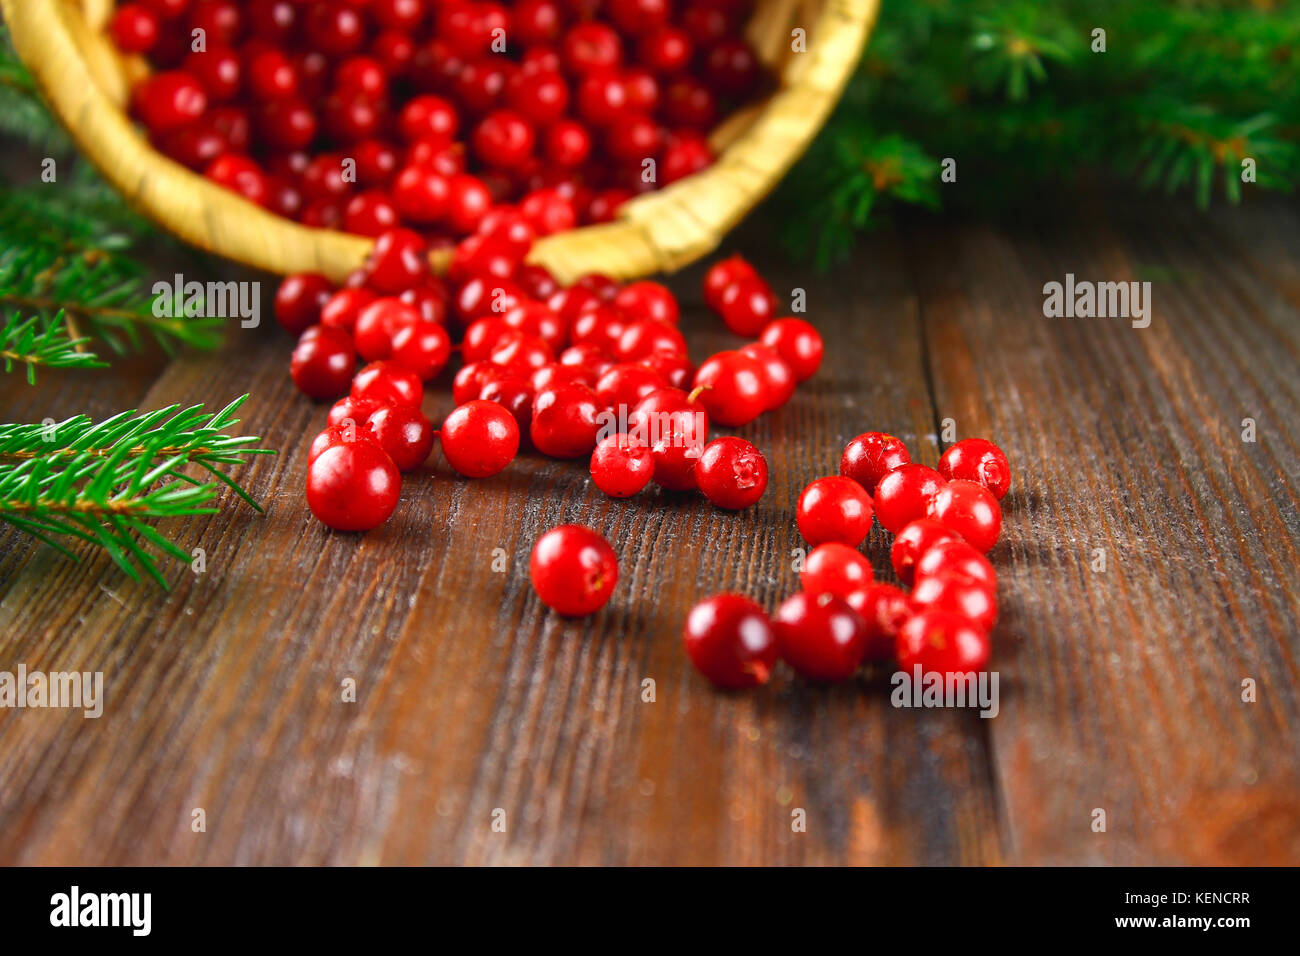 Cowberry, foxberry, cranberry, lingonberry sips from the basket on a brown wooden table. Surrounded by fir branches. - Stock Image